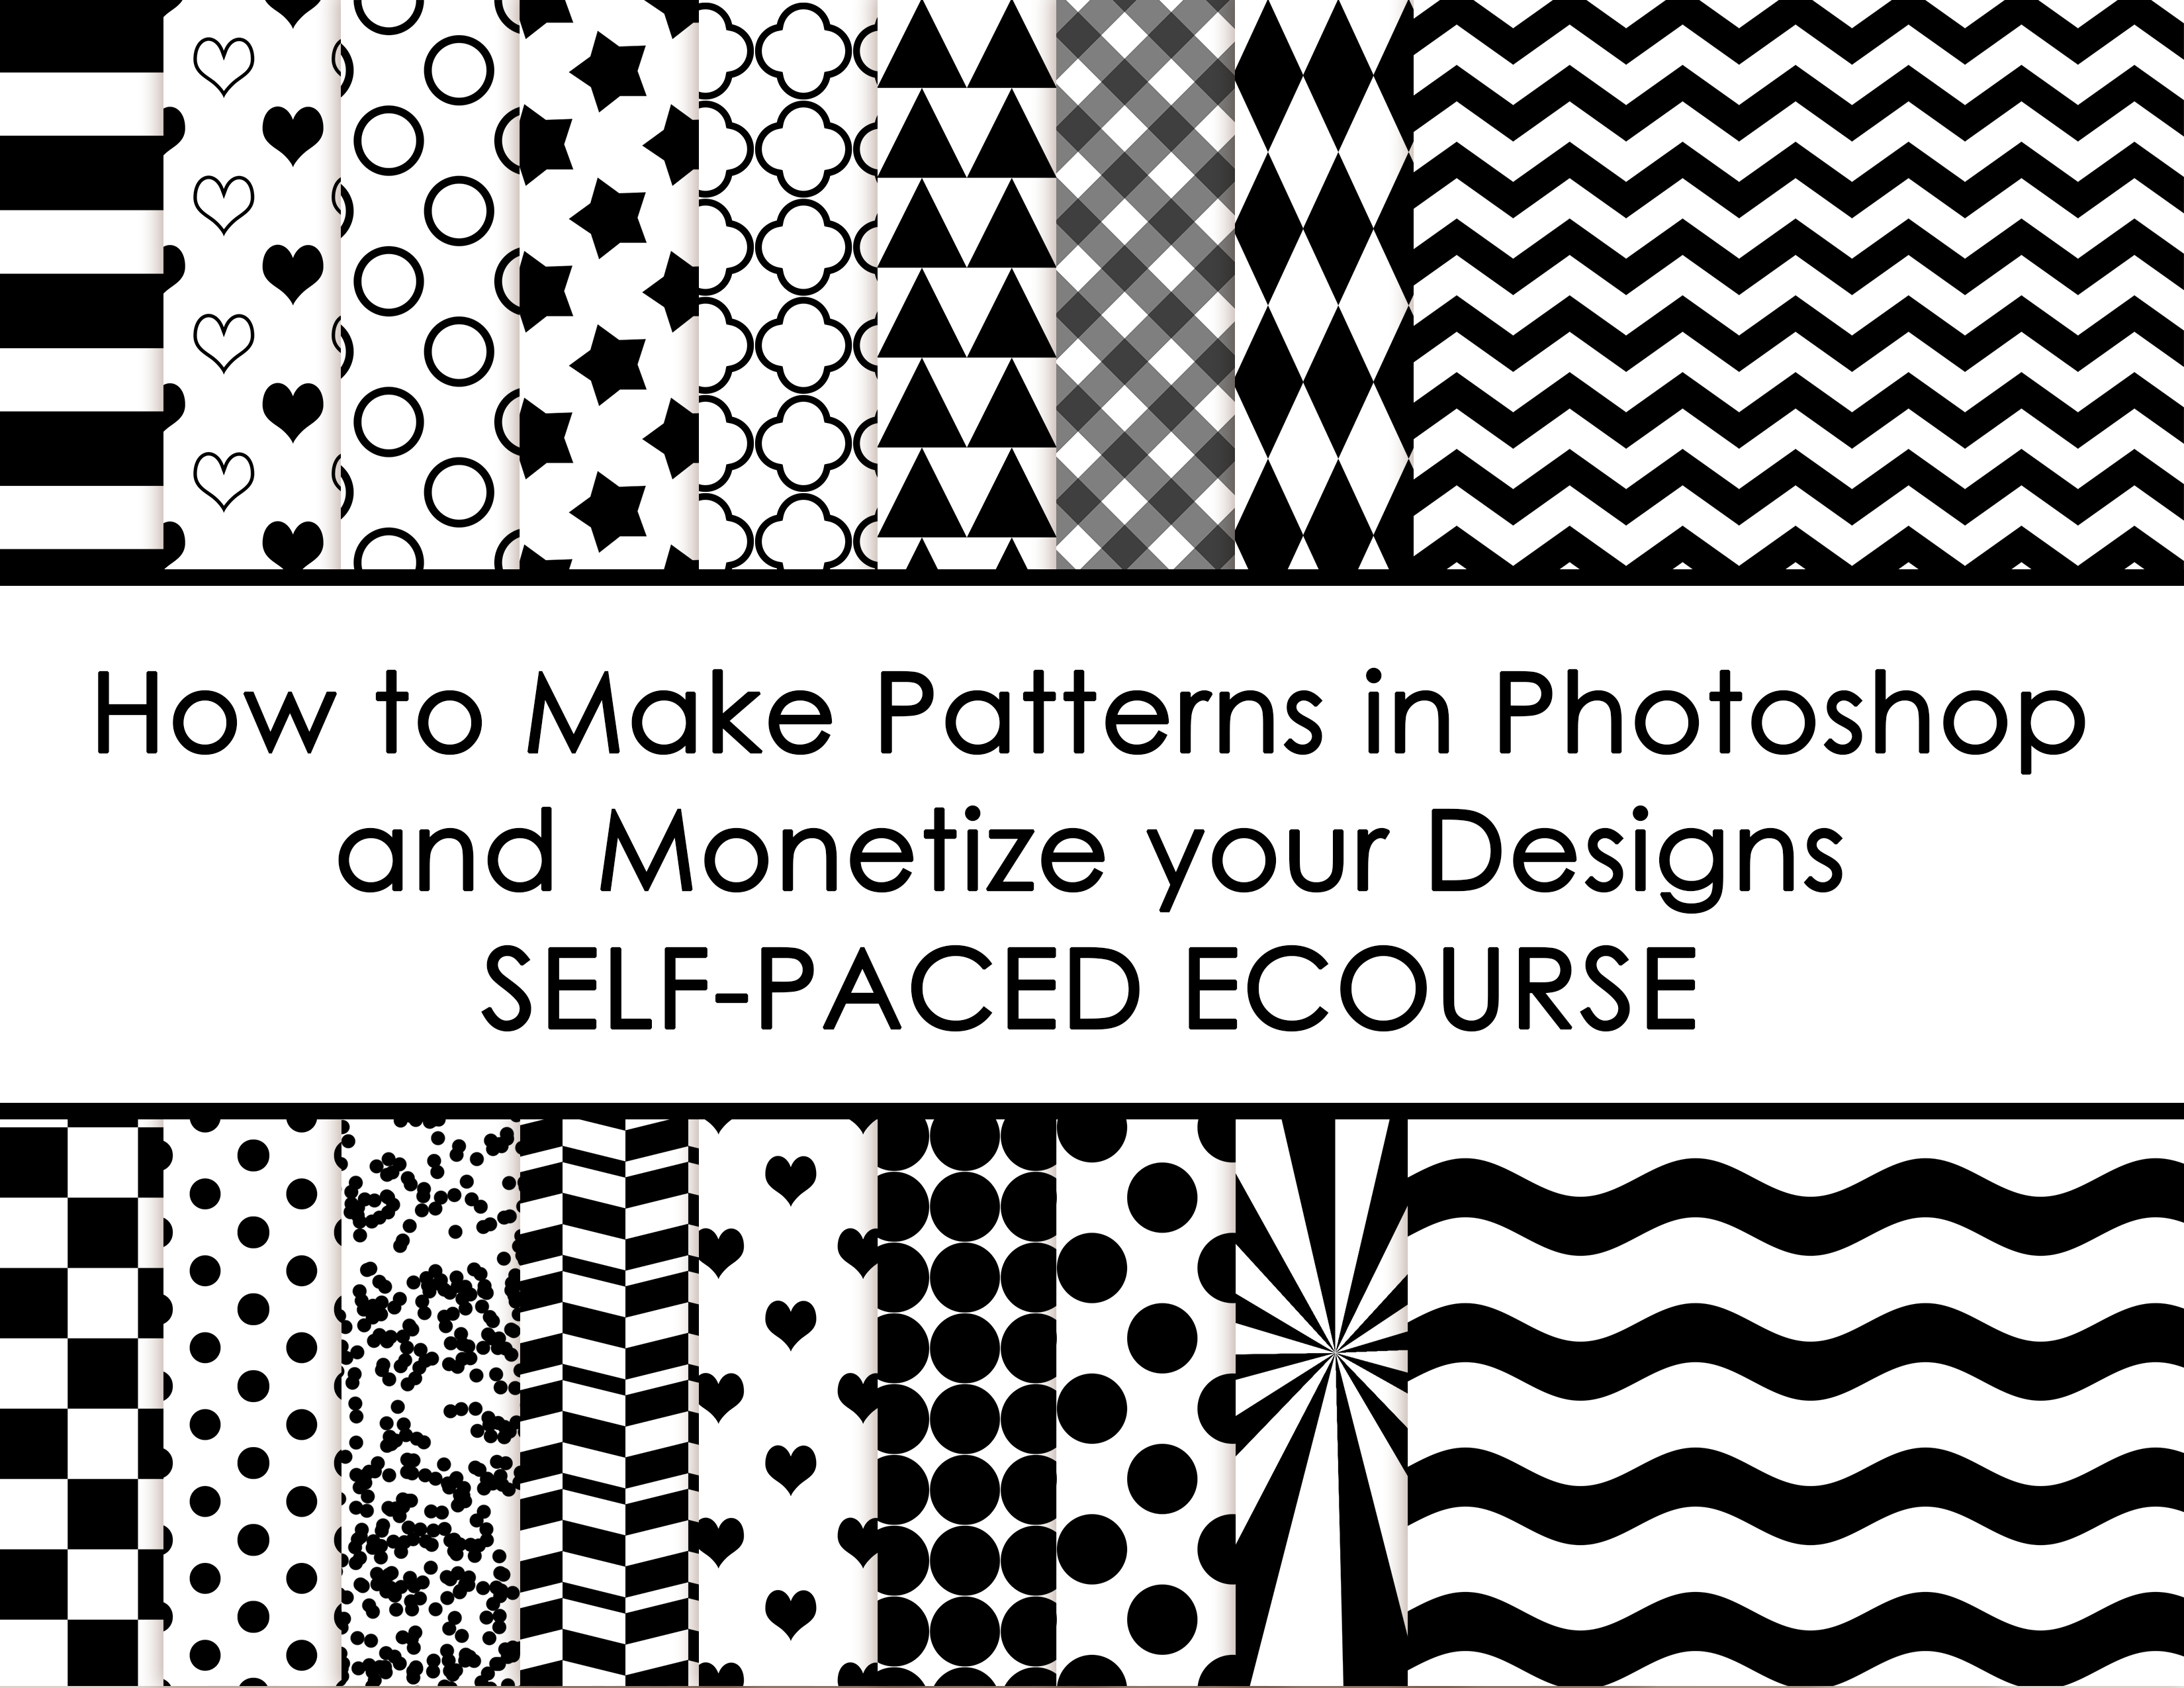 How to make patterns in photoshop and monetize your designs self paced ecourse allaboutthehouse surface design graphic design